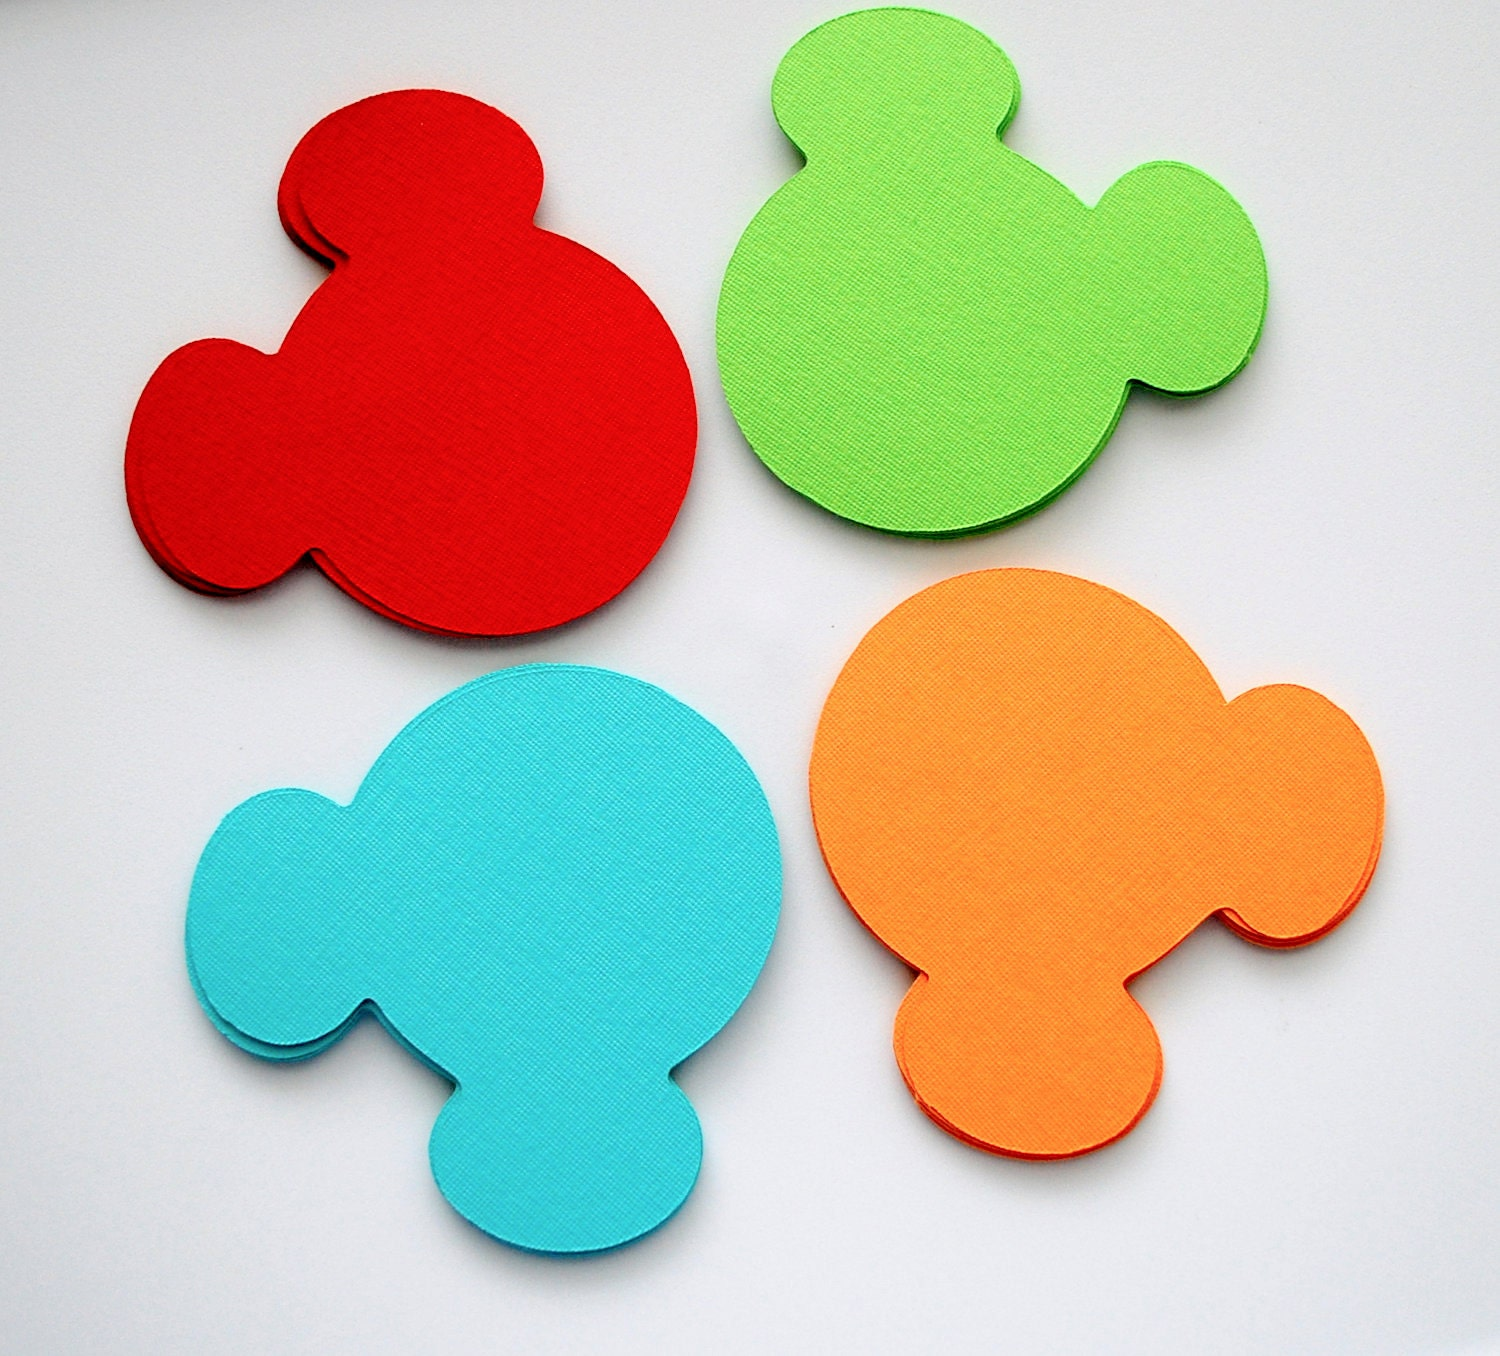 36 Mickey Mouse die cut (4 x3.75 inches) in Fun Colors: Lime green, red, orange and Turquoise A181